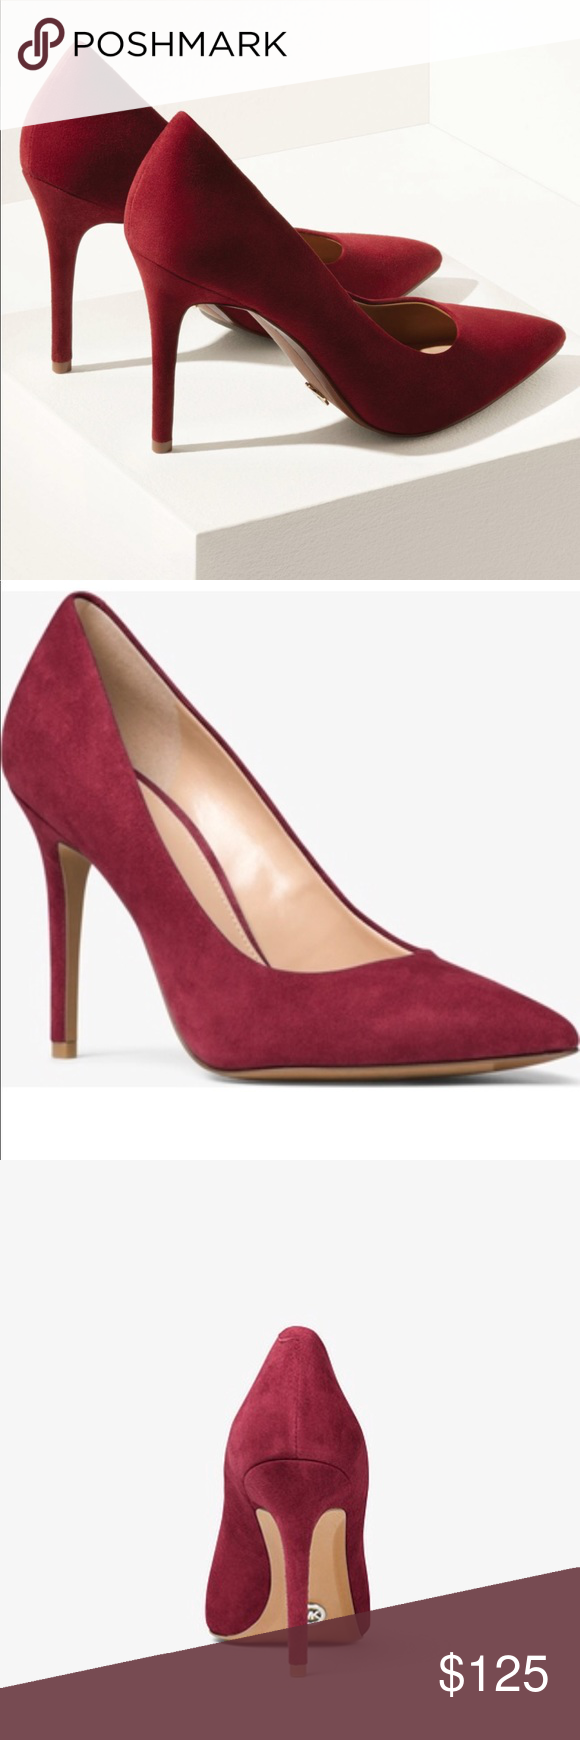 Michael Kors Claire Suede Pumps Cherry red suede pumps - brand new, never worn Michael Kors Shoes Heels